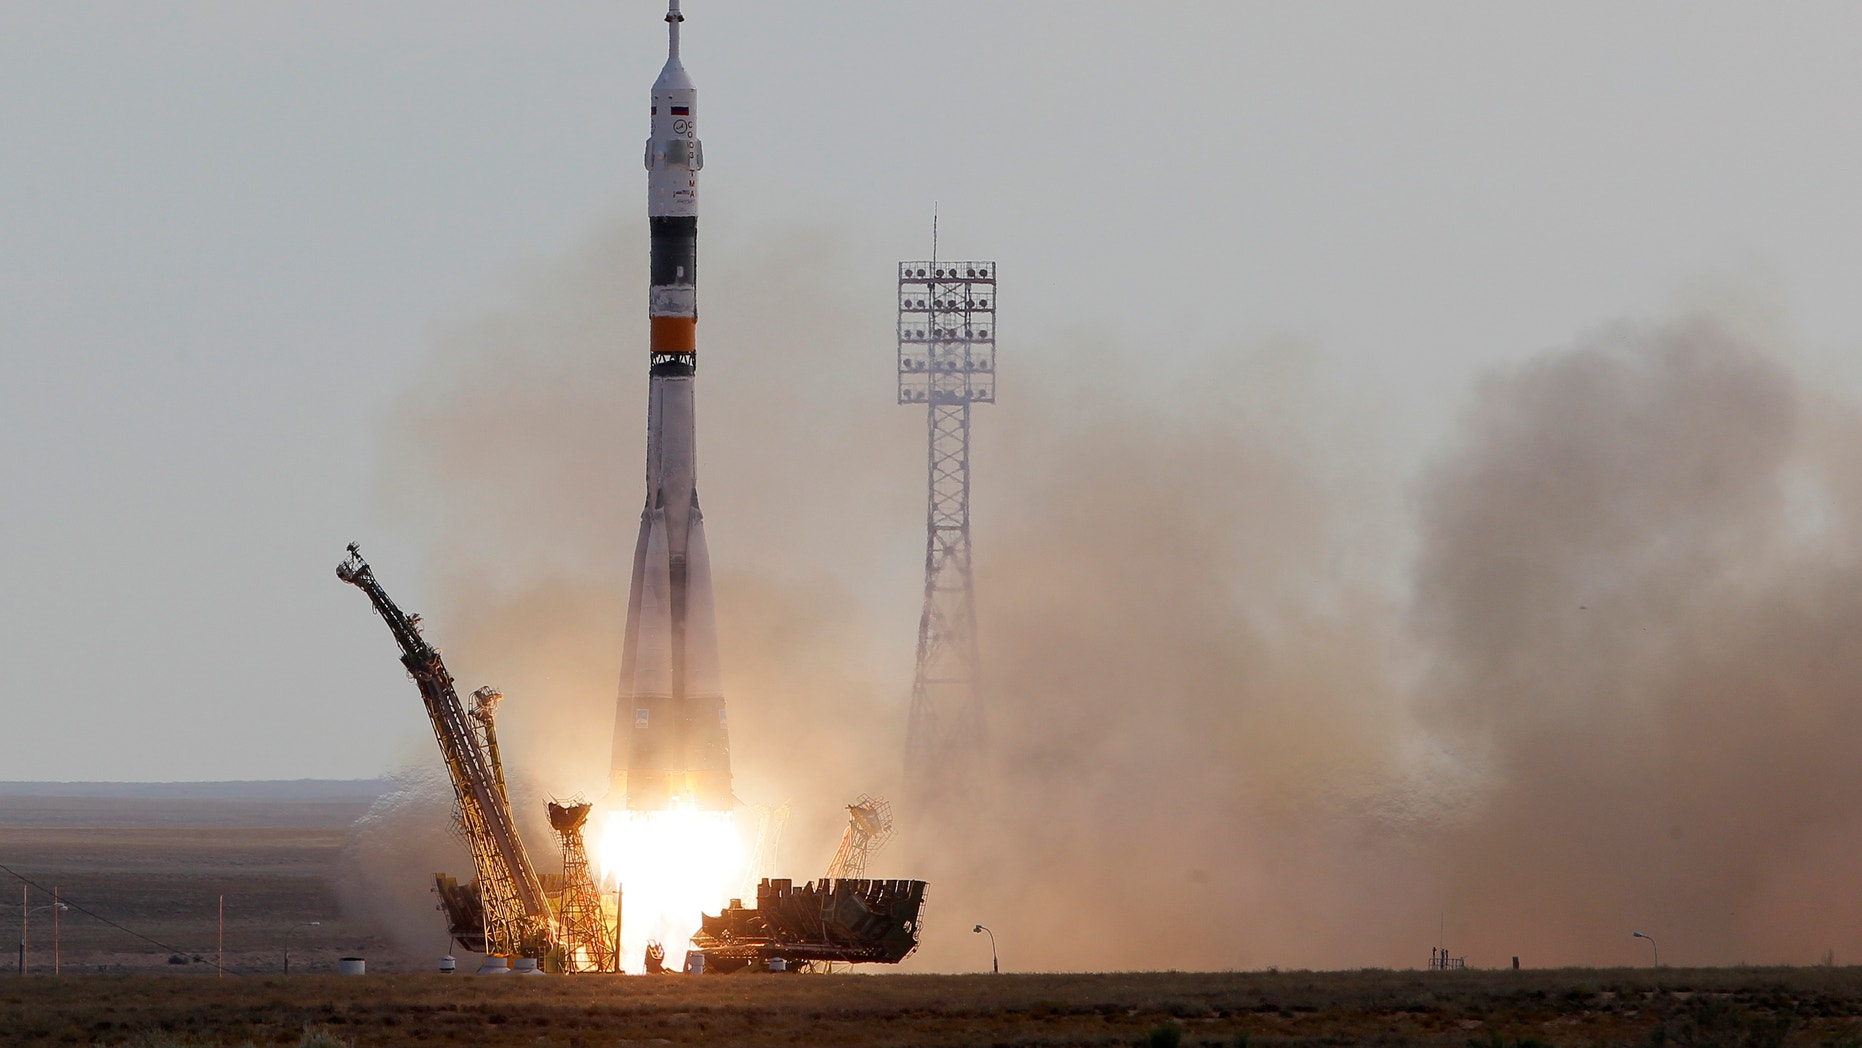 July 15, 2012: The Soyuz-FG rocket booster with Soyuz TMA-05M spaceship carrying a new crew to the International Space Station, ISS, blasts off from the Russian leased Baikonur Cosmodrome, in Kazakhstan.